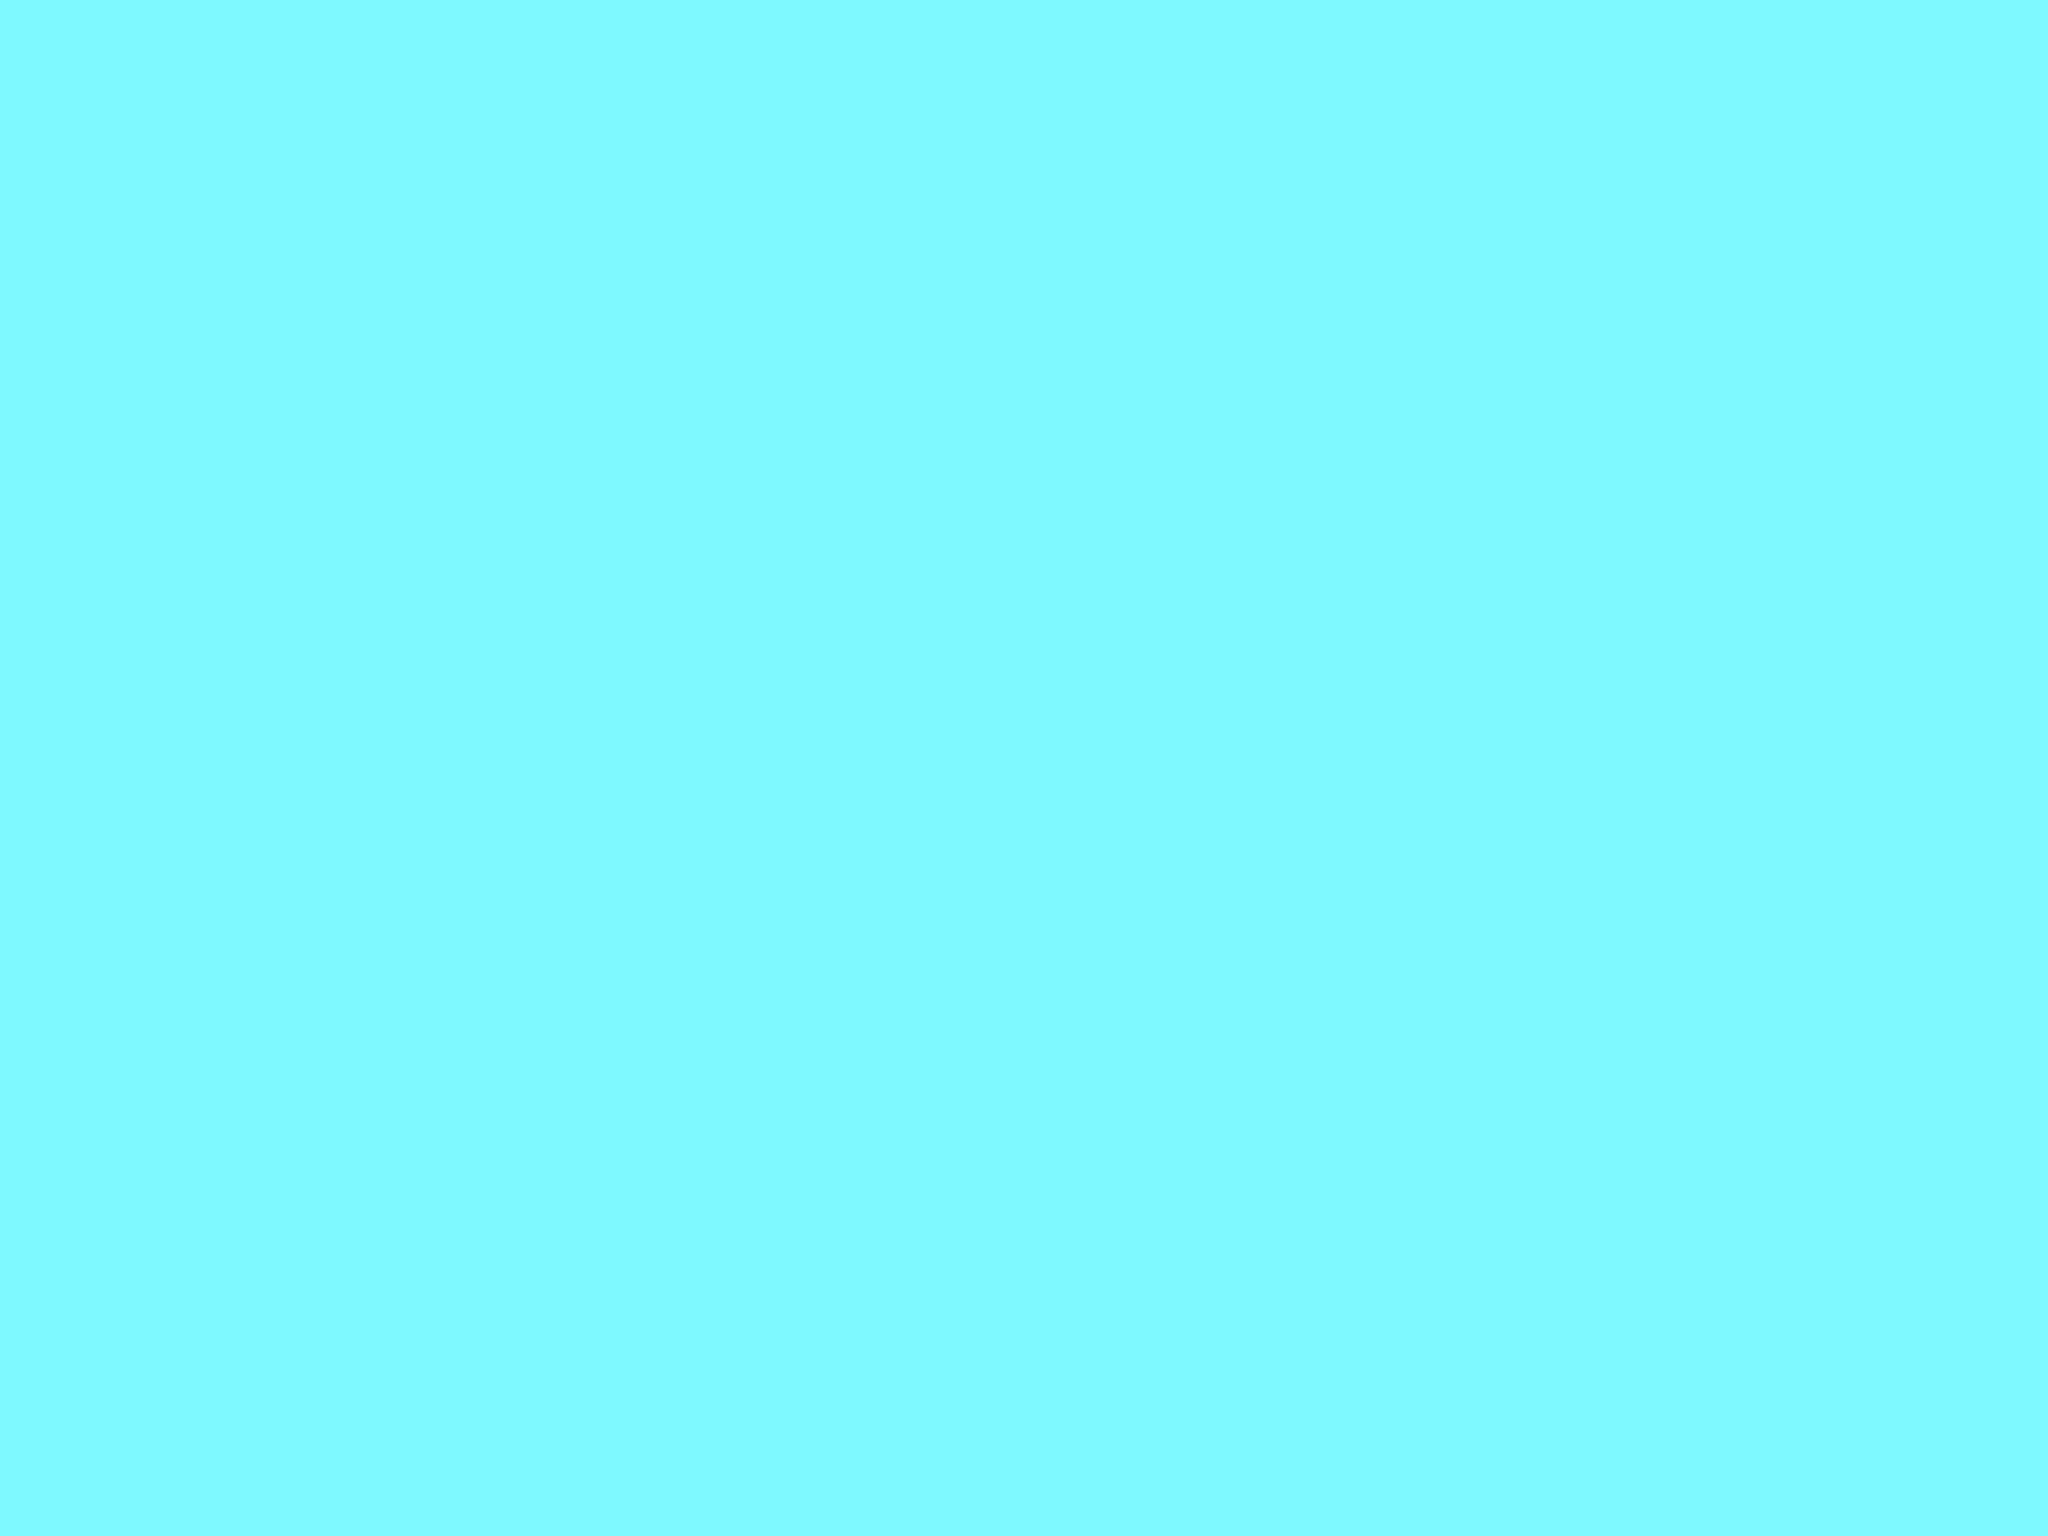 2048x1536 Electric Blue Solid Color Background